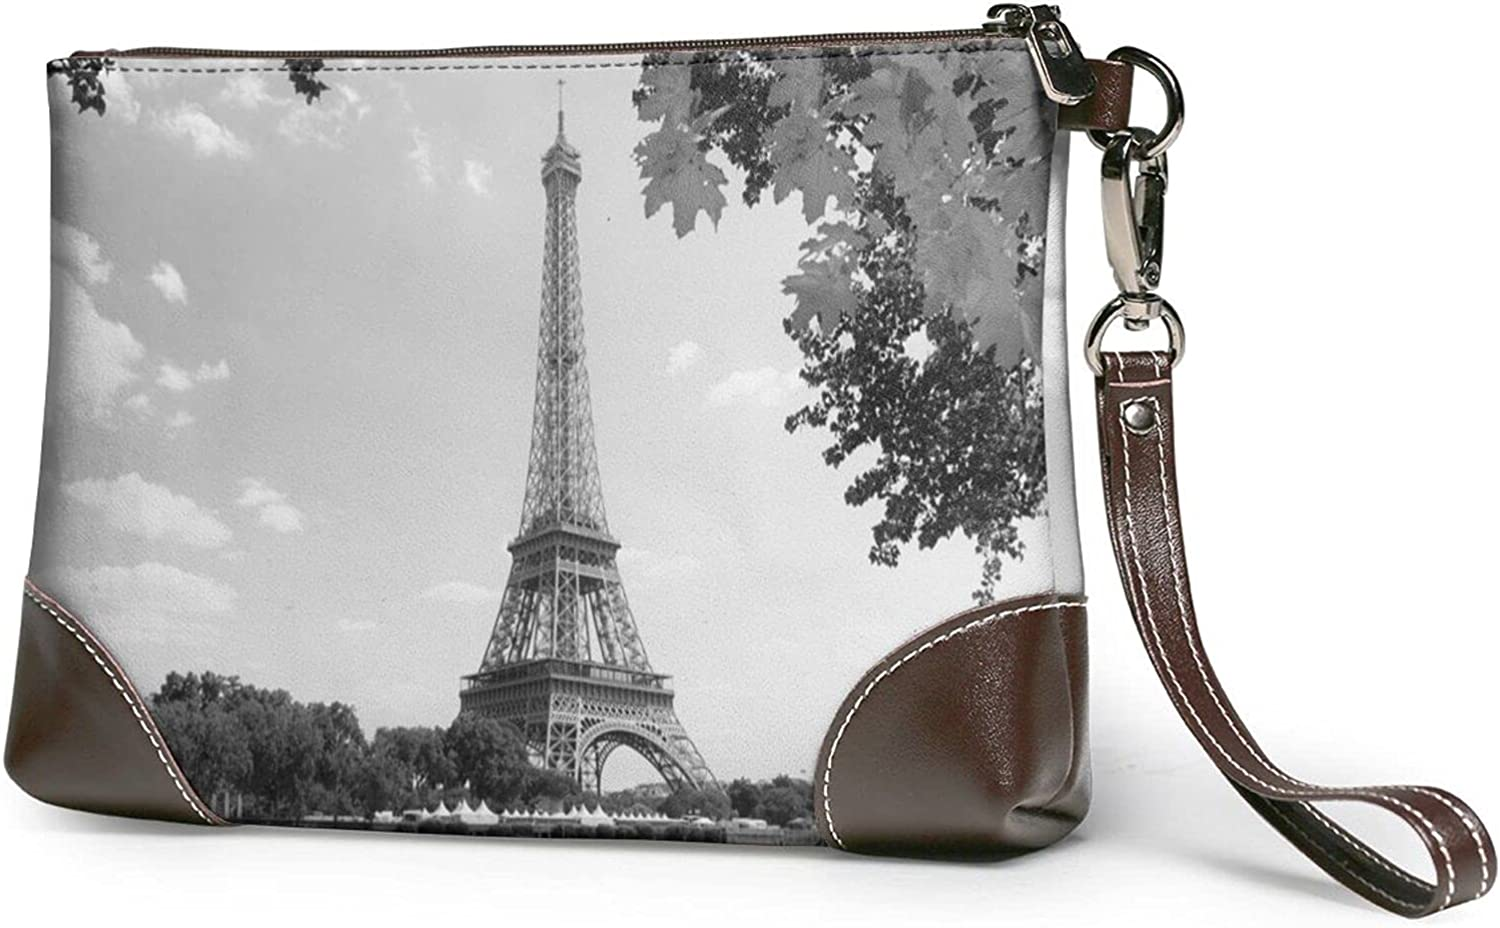 Wallet Resting Elephant Printed Ladies Wristband Handbag Leather Clutch 8 X 5.5 X 1.5 Inches